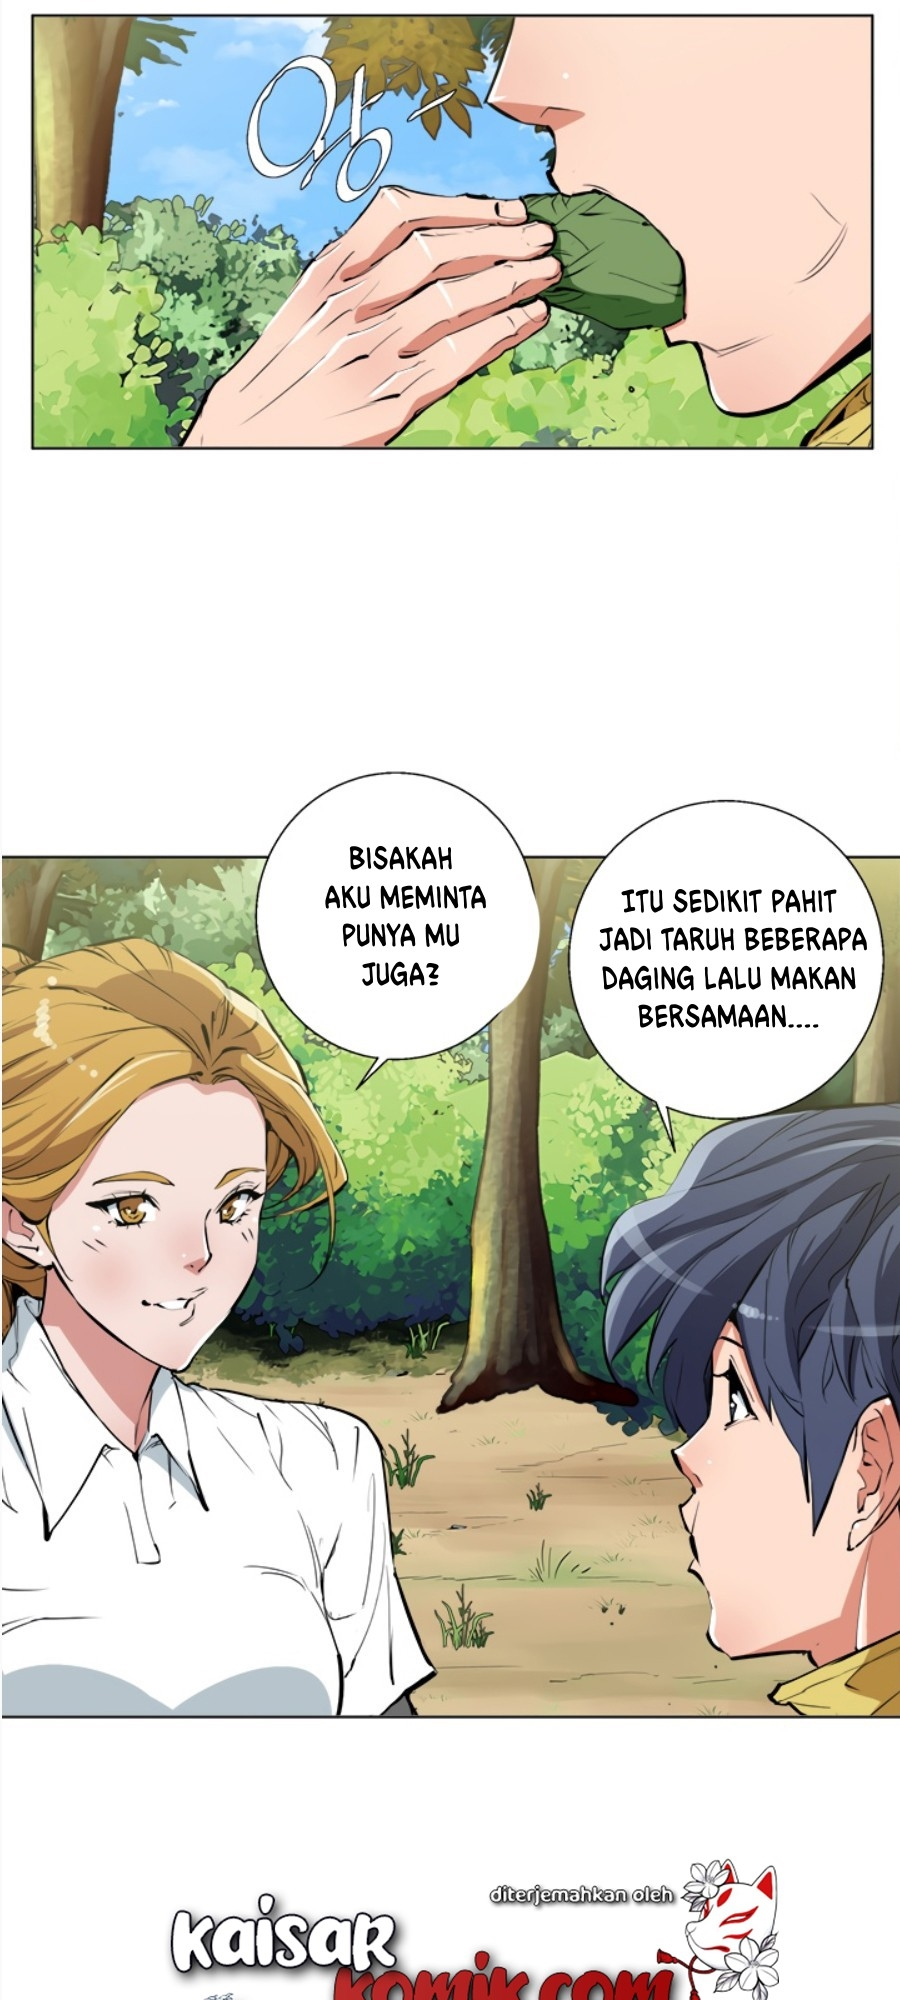 I Stack Experience Through Writing Books Chapter 66 Bahasa Indonesia